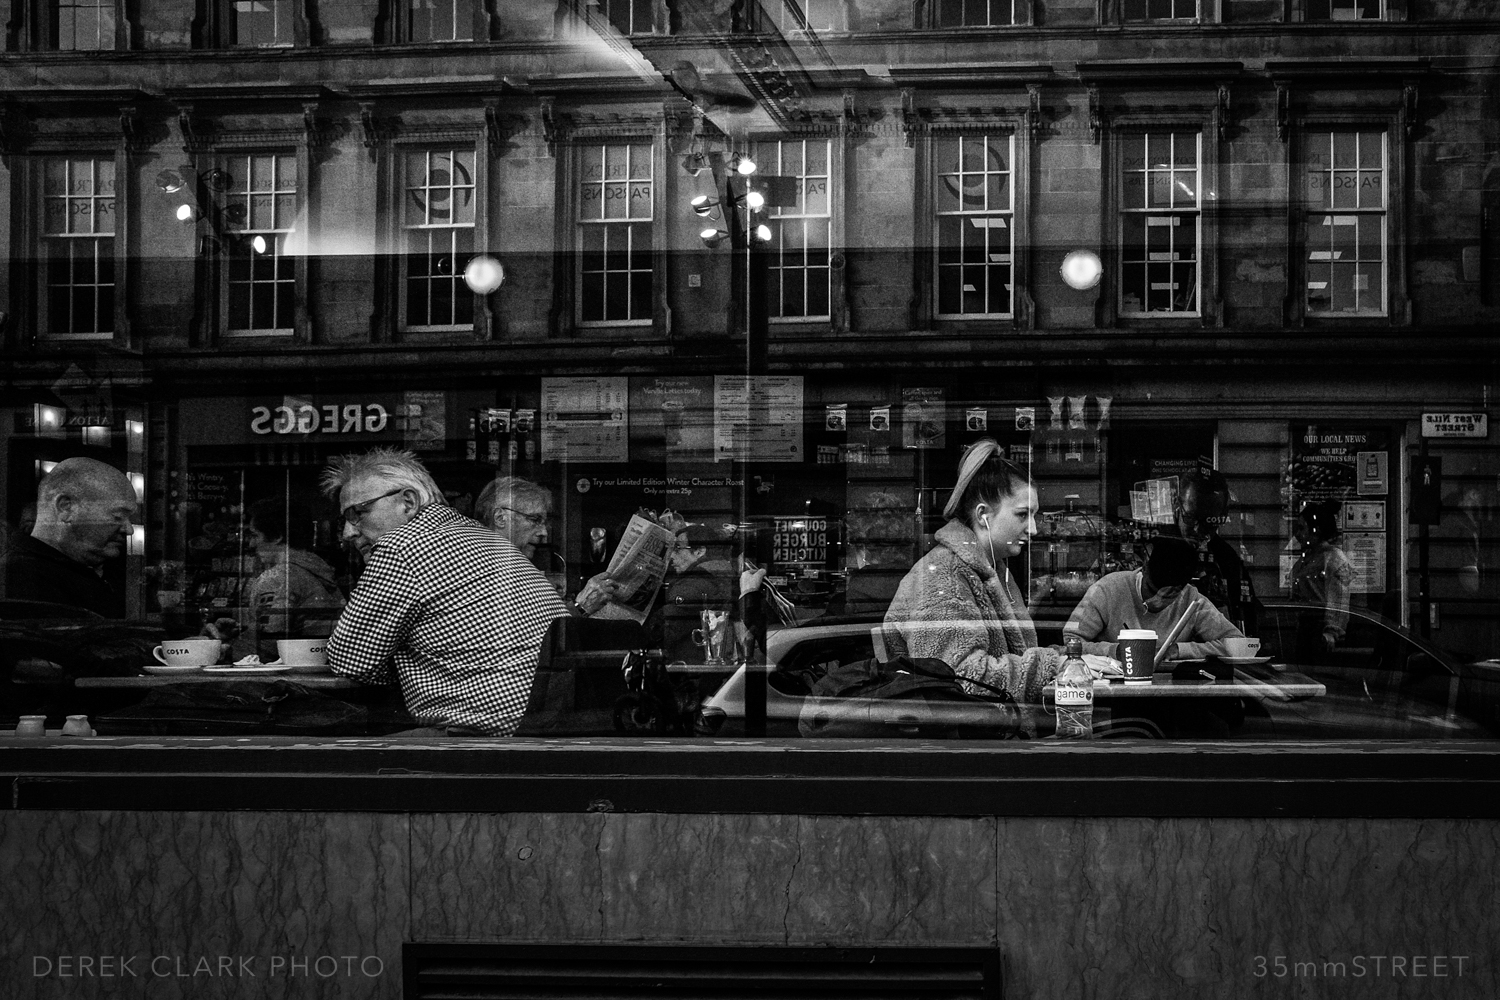 082_35mmStreet-Glasgow-Scotland-Feb-2019.jpg